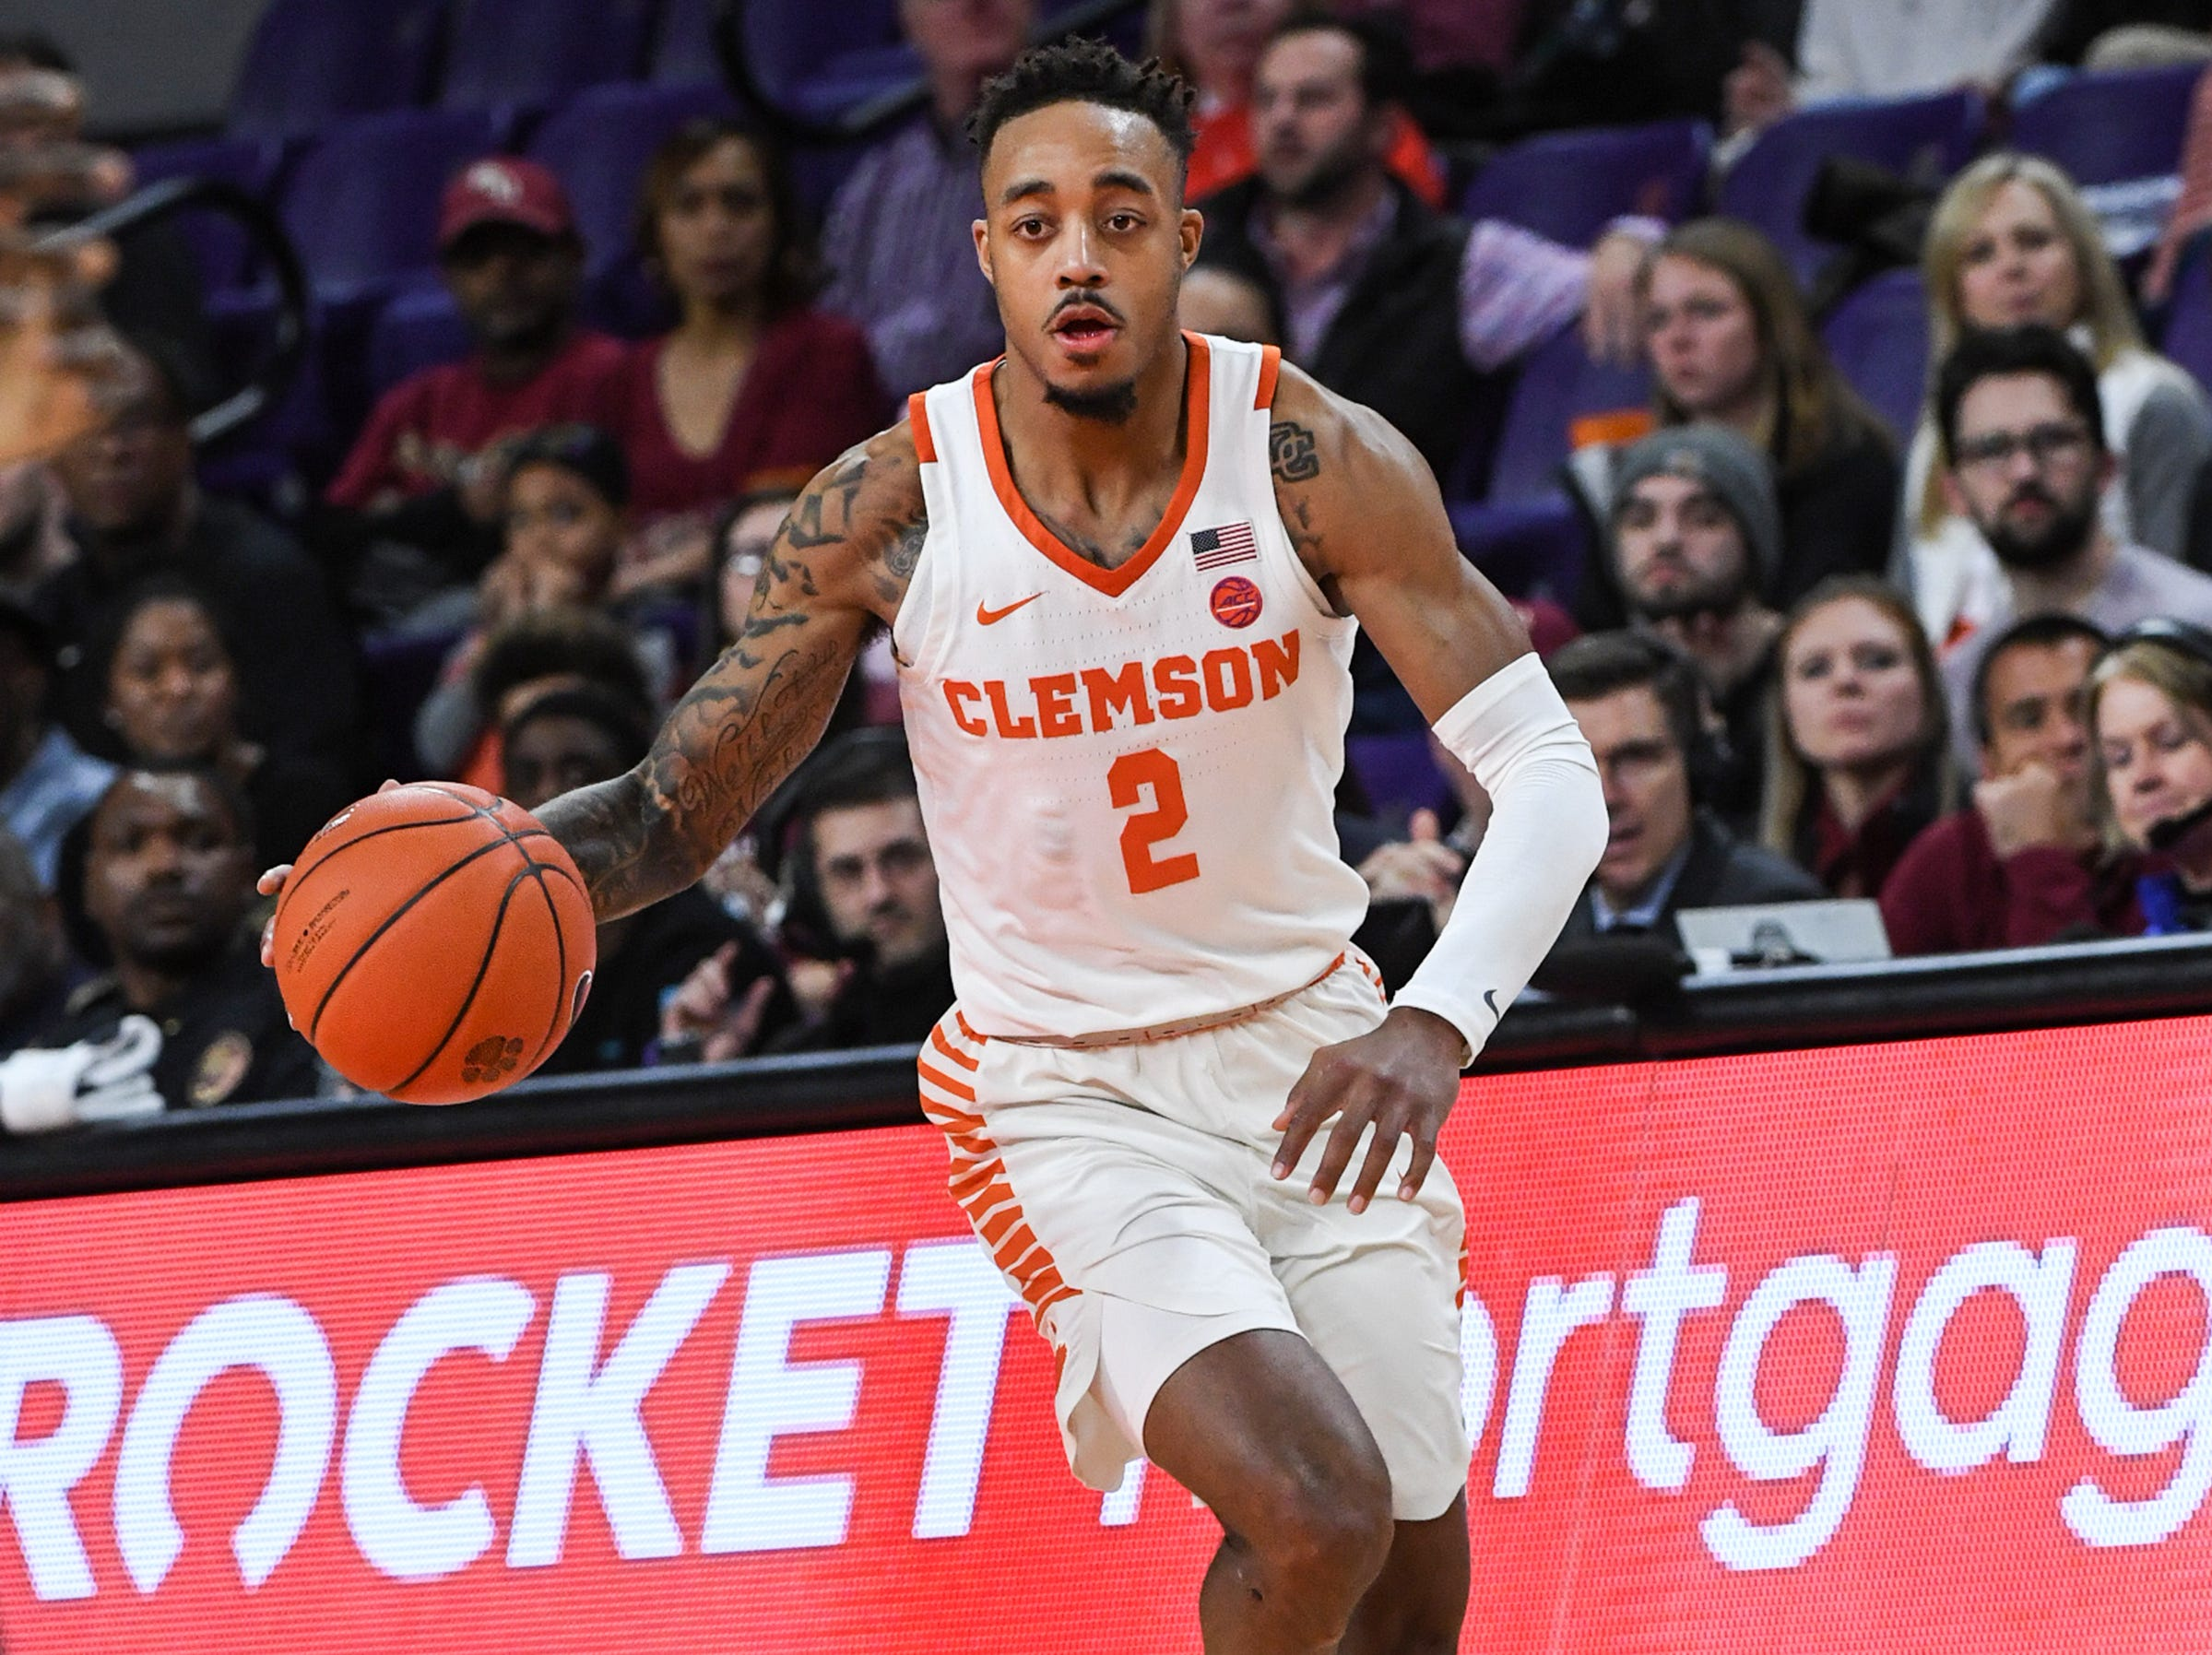 Clemson guard Marcquise Reed (2) plays against Florida State during the second half at Littlejohn Coliseum in Clemson Tuesday, February 19, 2019.